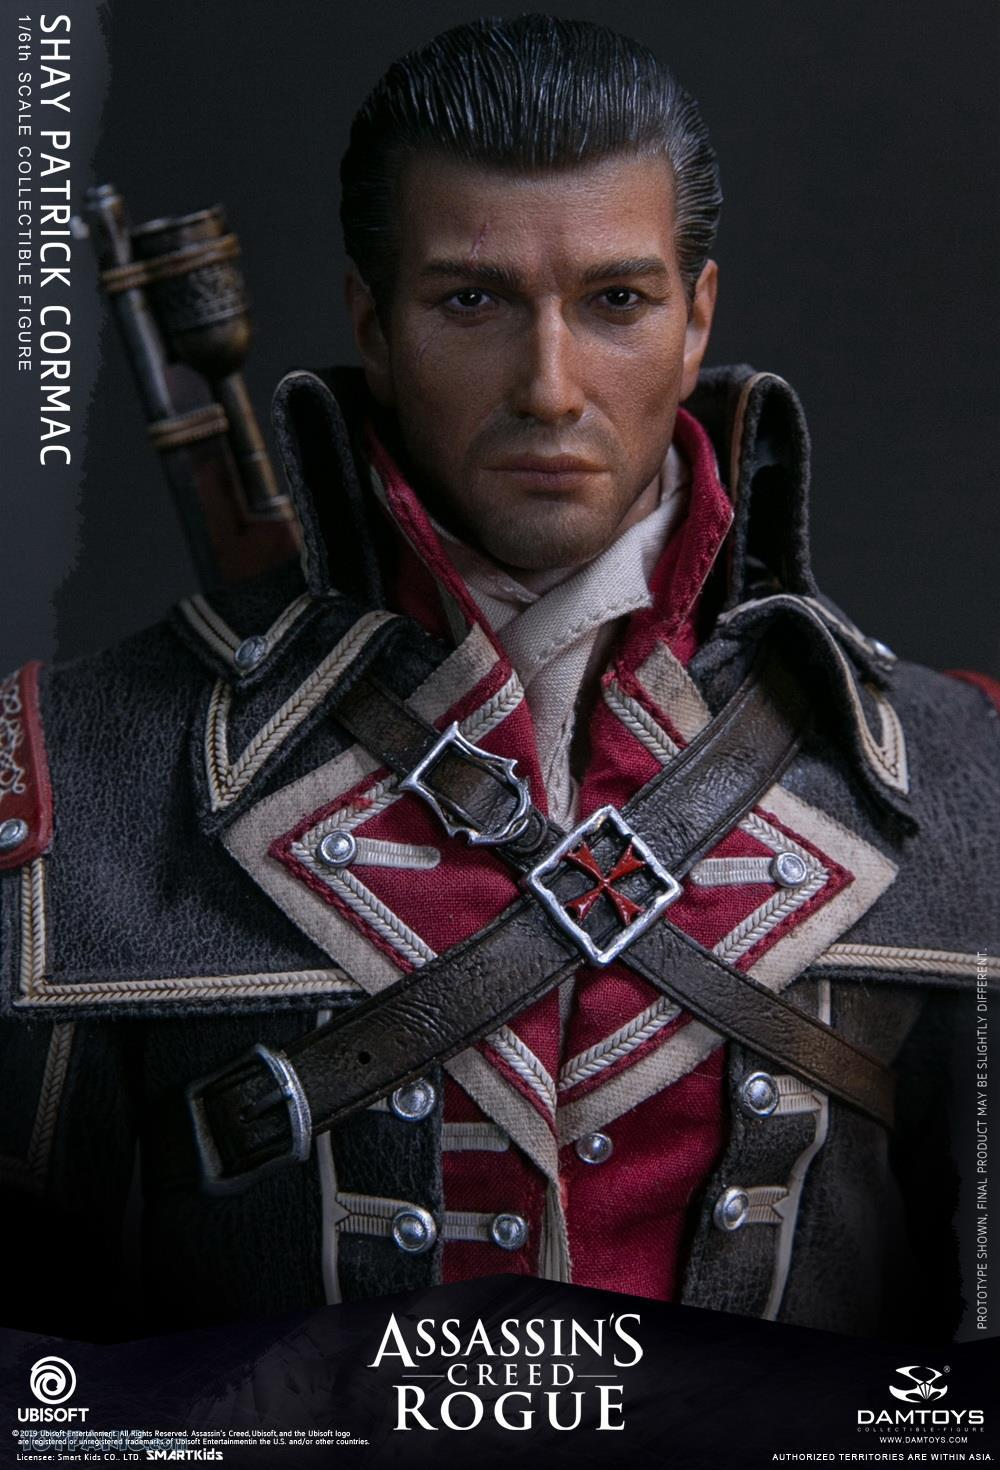 male - NEW PRODUCT: DAMTOYS: Assassins Creed Rogue - 1/6th scale Shay Patrick Cormac Collectible Figure 82220127